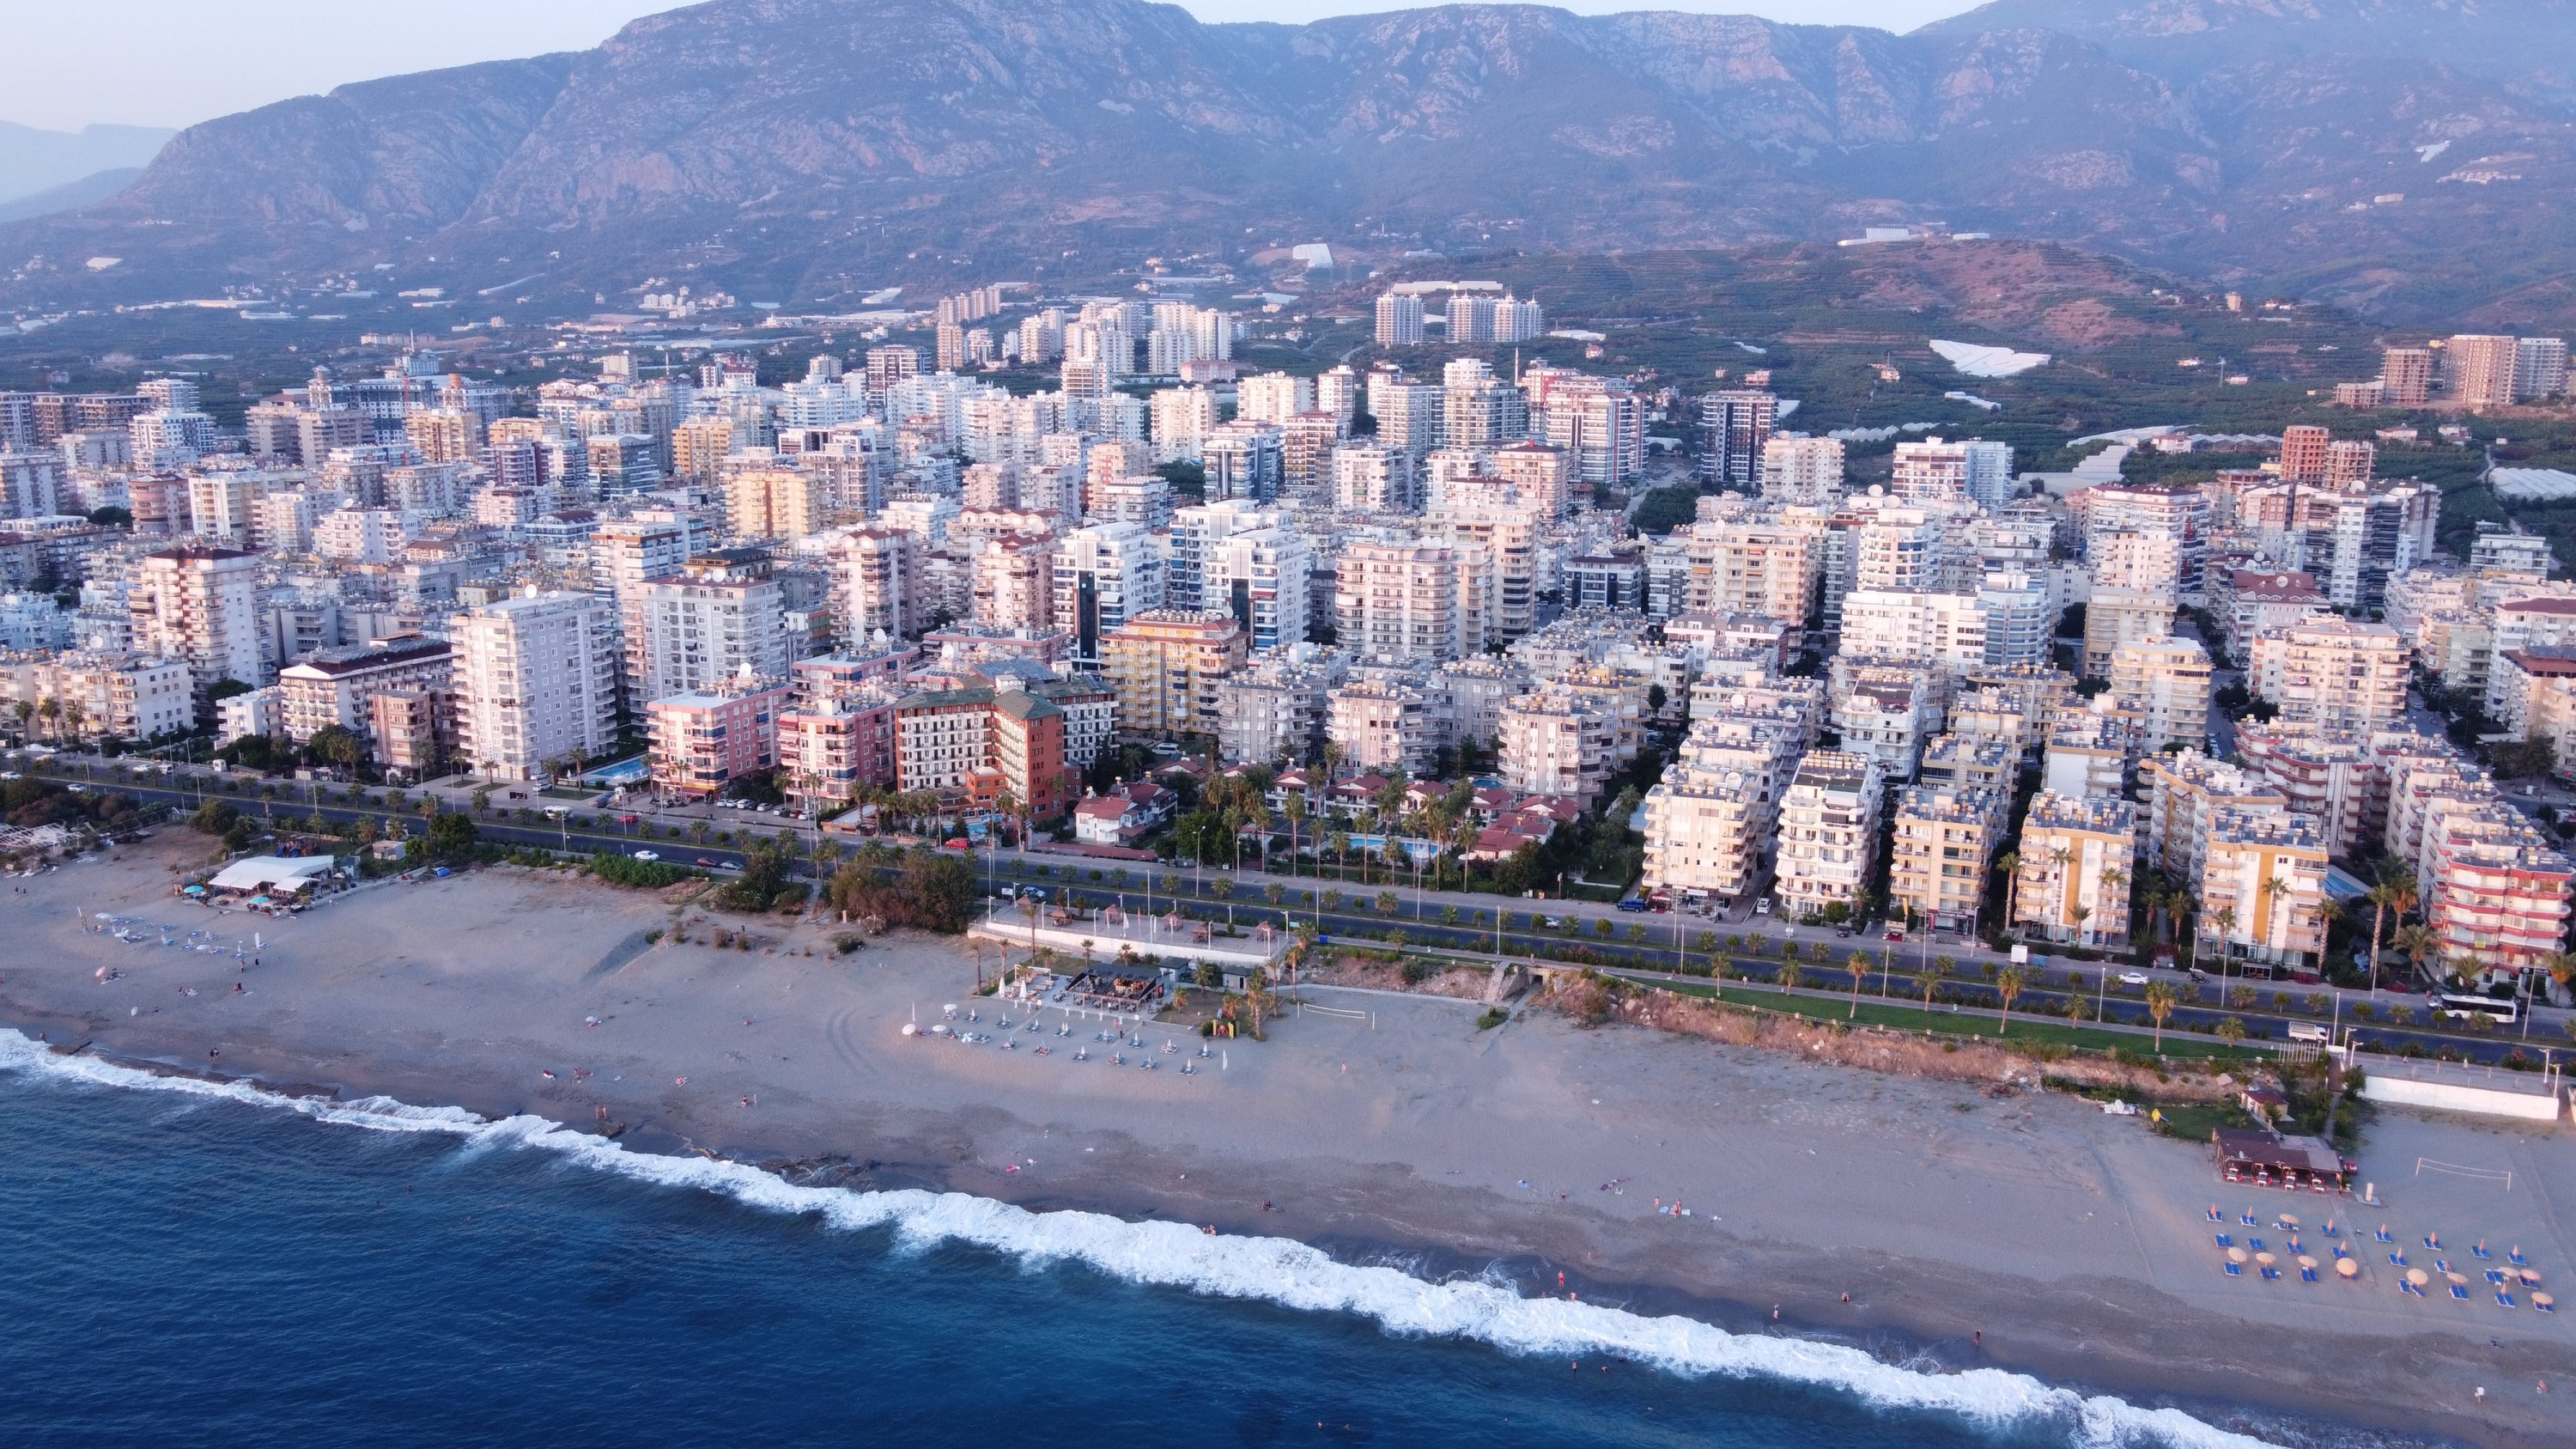 The coastal resort city Alanya with multiple residential buildings overlooking the Mediterranean Sea. (Shutterstock Photo)